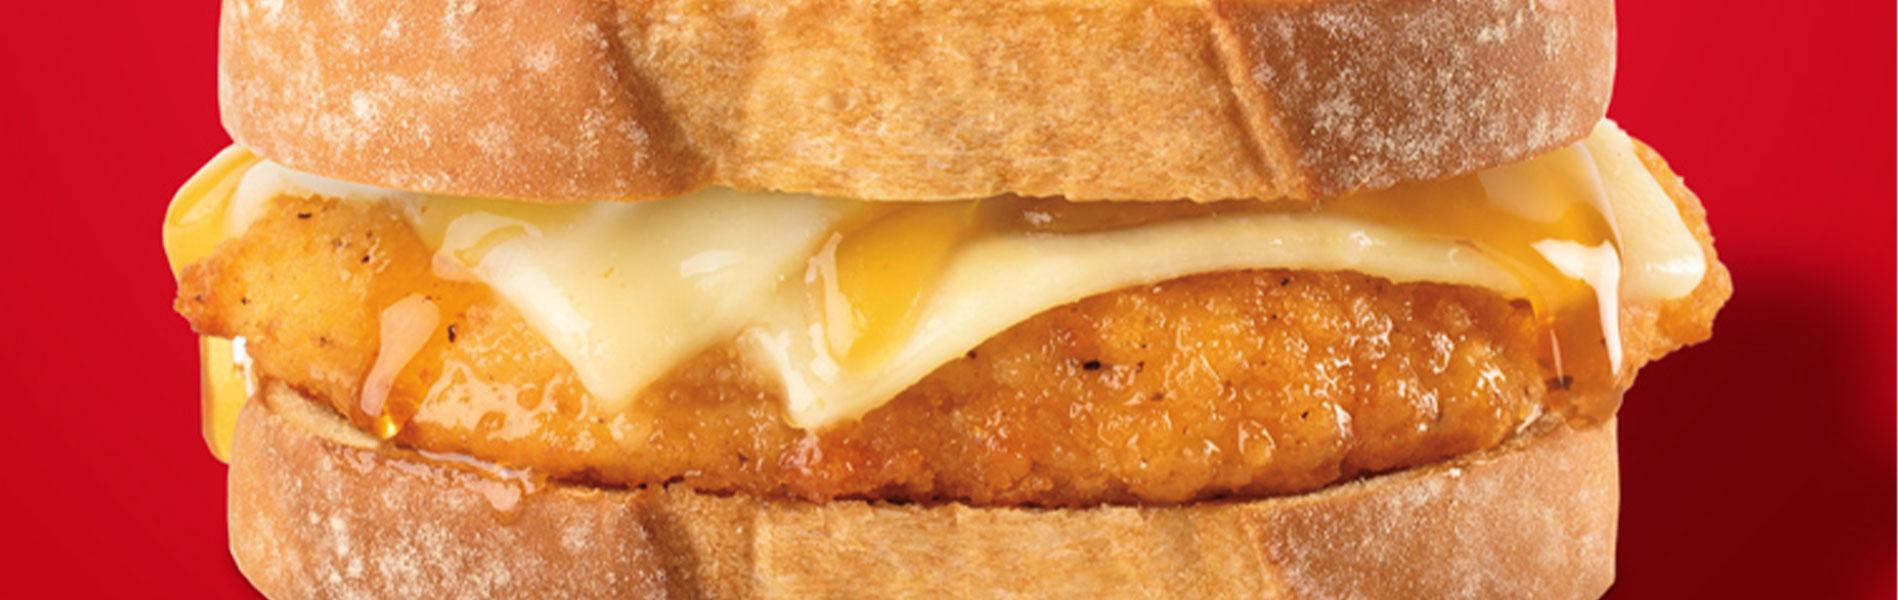 breaded chicken breast, Sharp White Cheddar cheese and hot honey